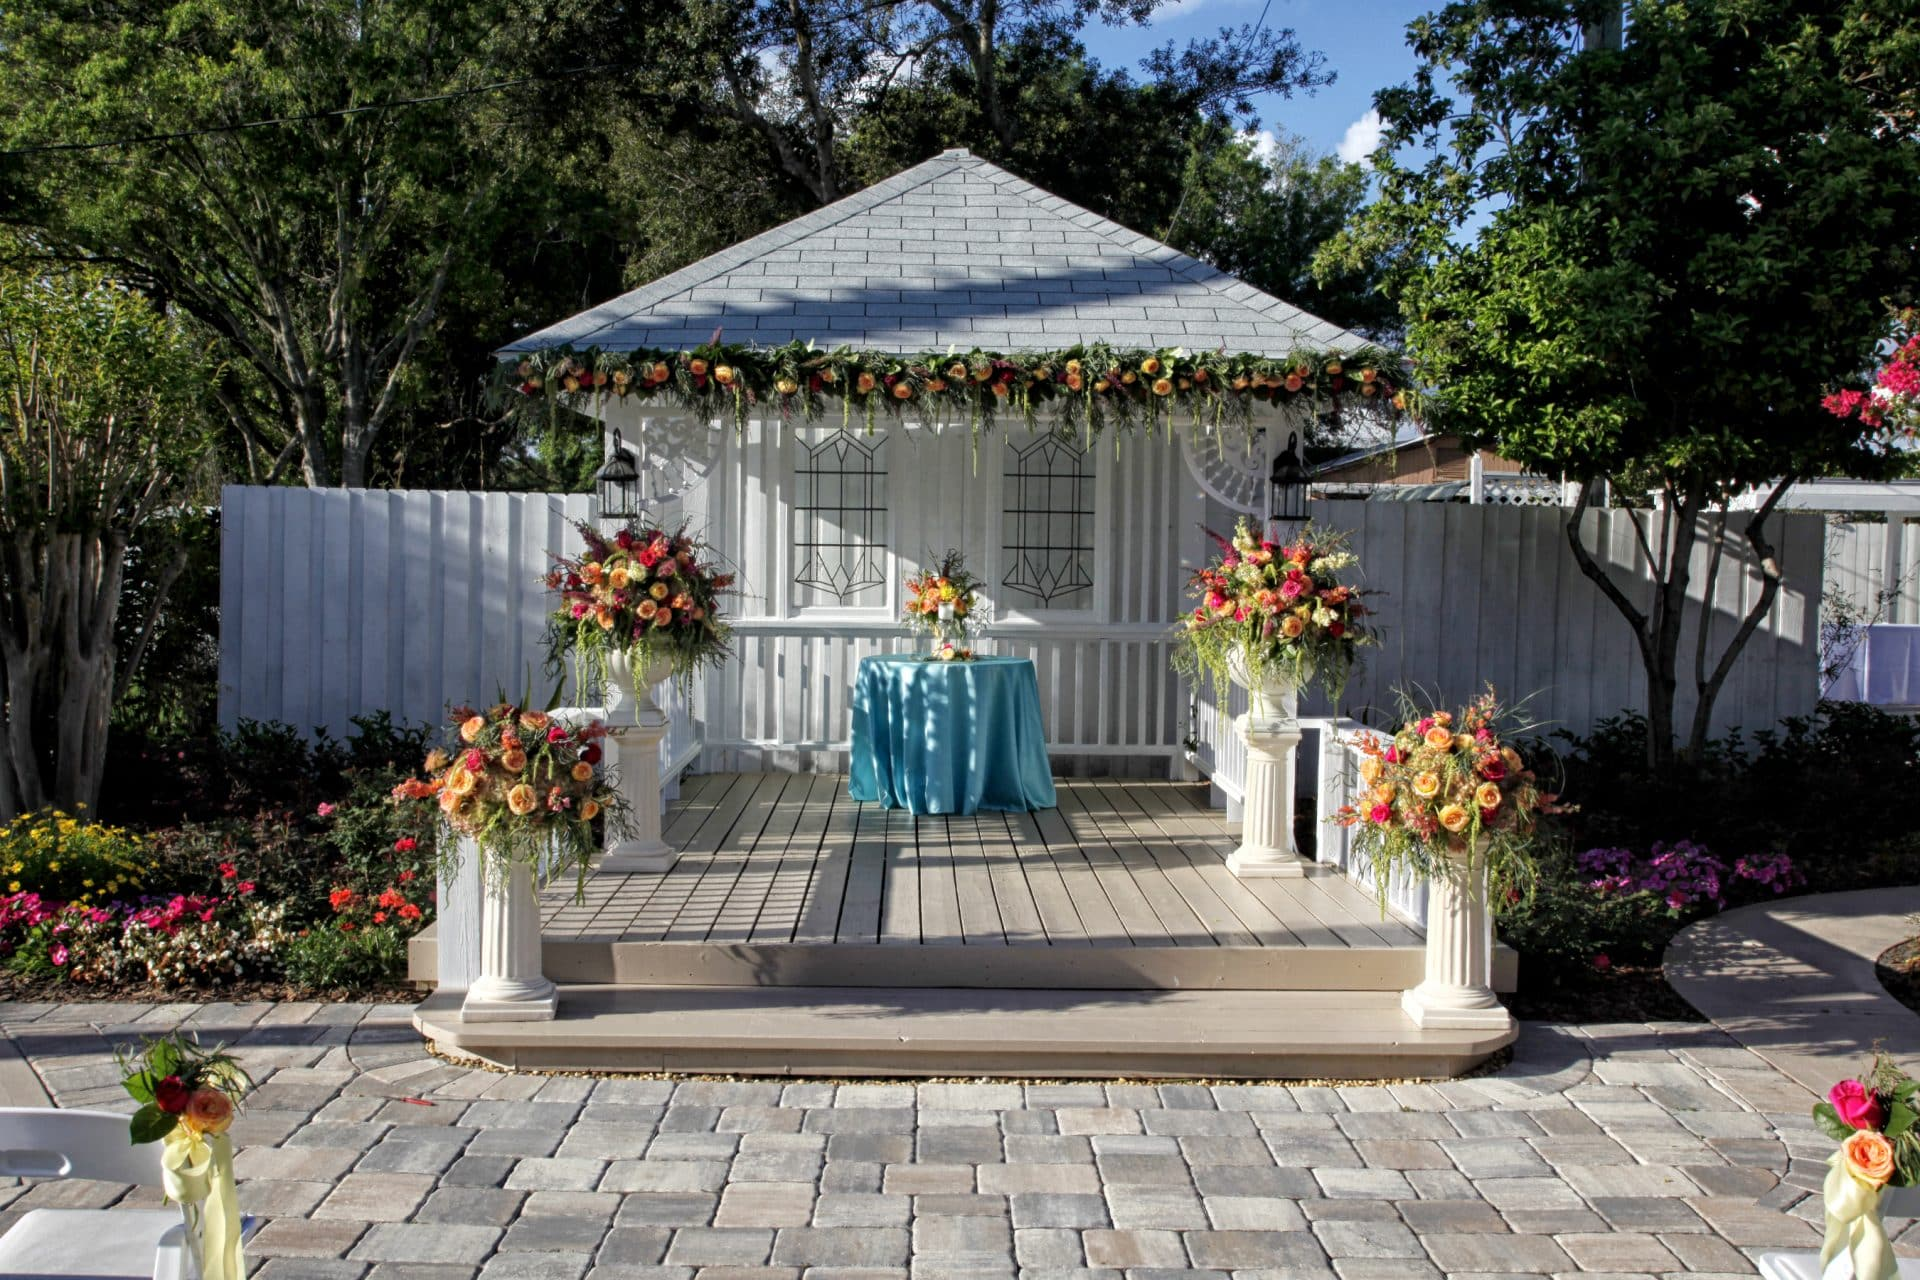 Quaint and romantic ceremony space at Celebration Gardens